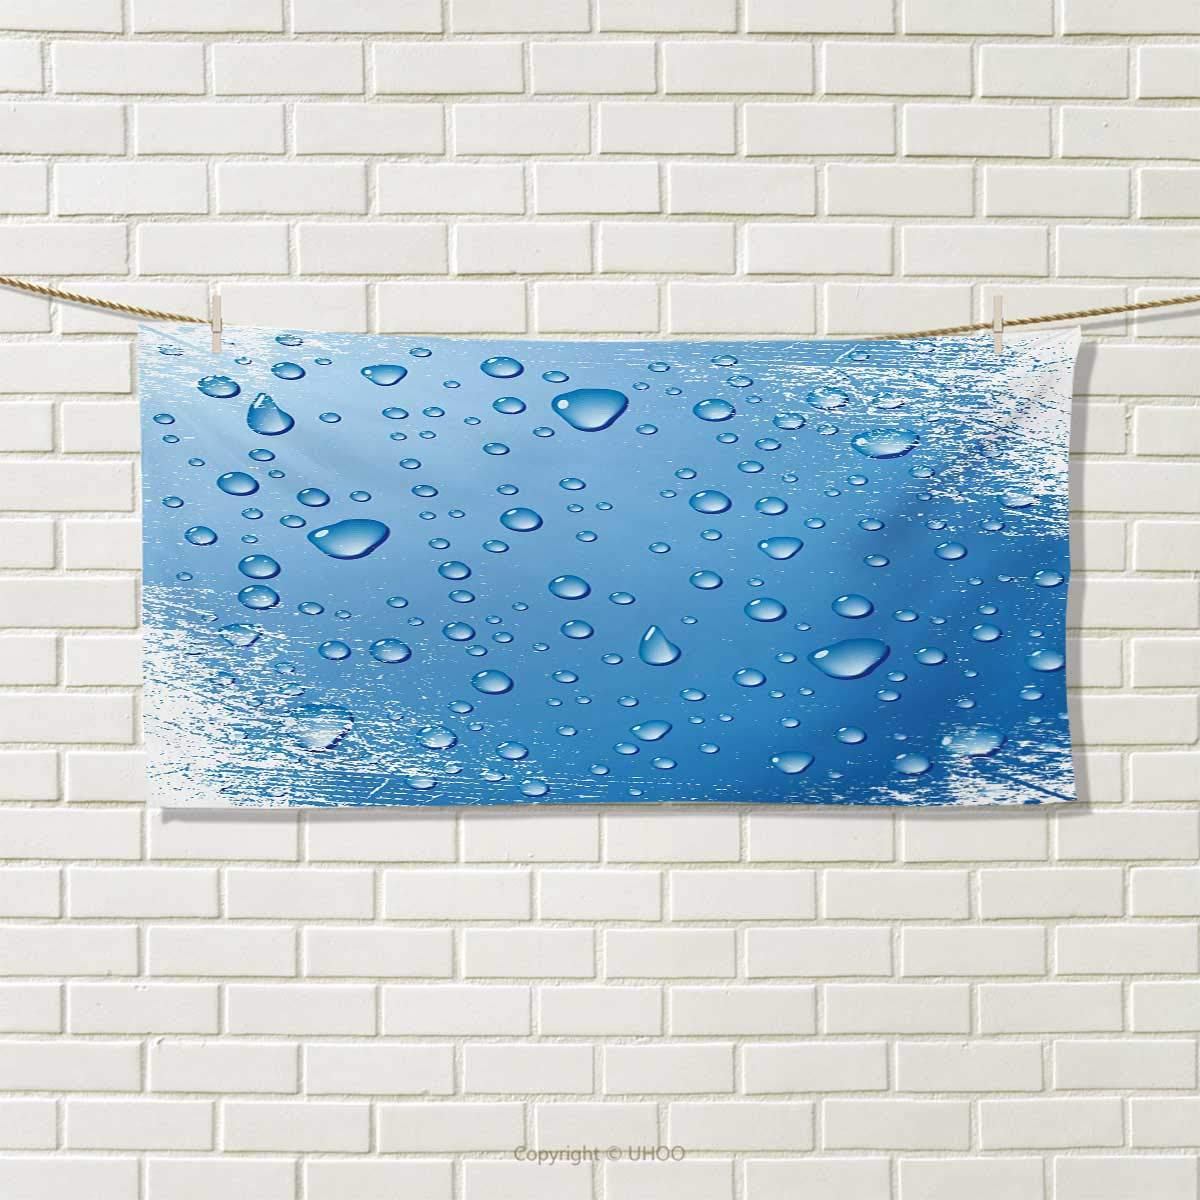 Chaneyhouse Grunge,Travel Towel,Realistic Water Drops Bubbles on Worn Scratched Looking Backdrop Freshness Purity,Quick-Dry Towels,Blue White Size: W 14'' x L 27.5''